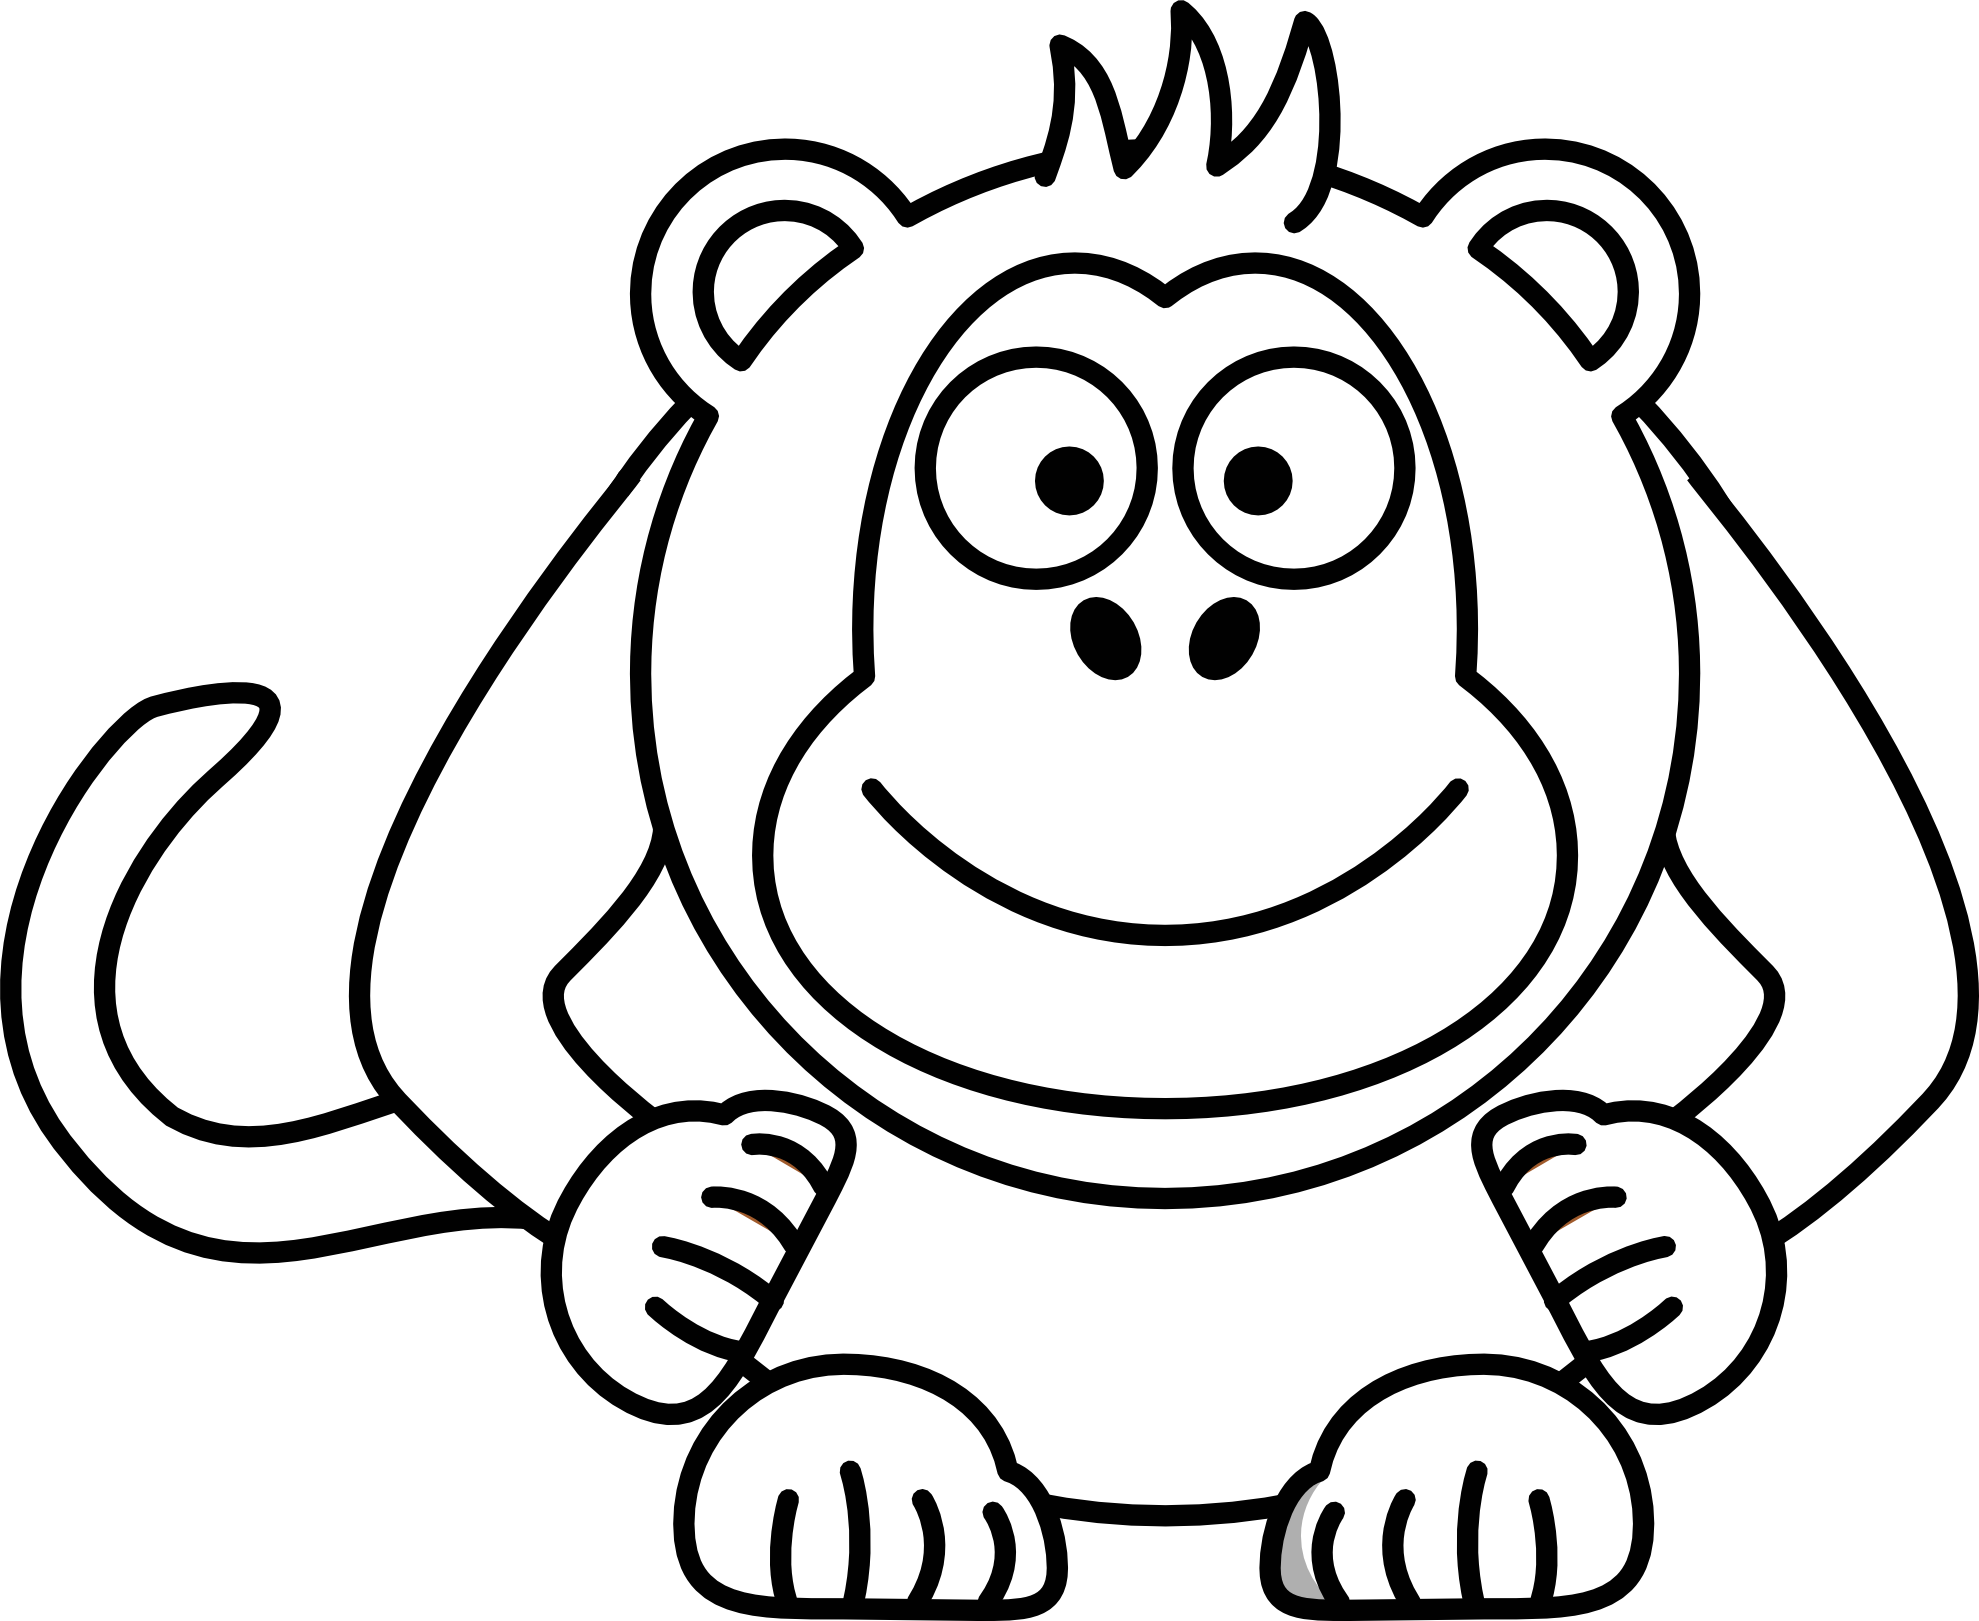 Carton drawing page. Coloring pages cartoon monkeys